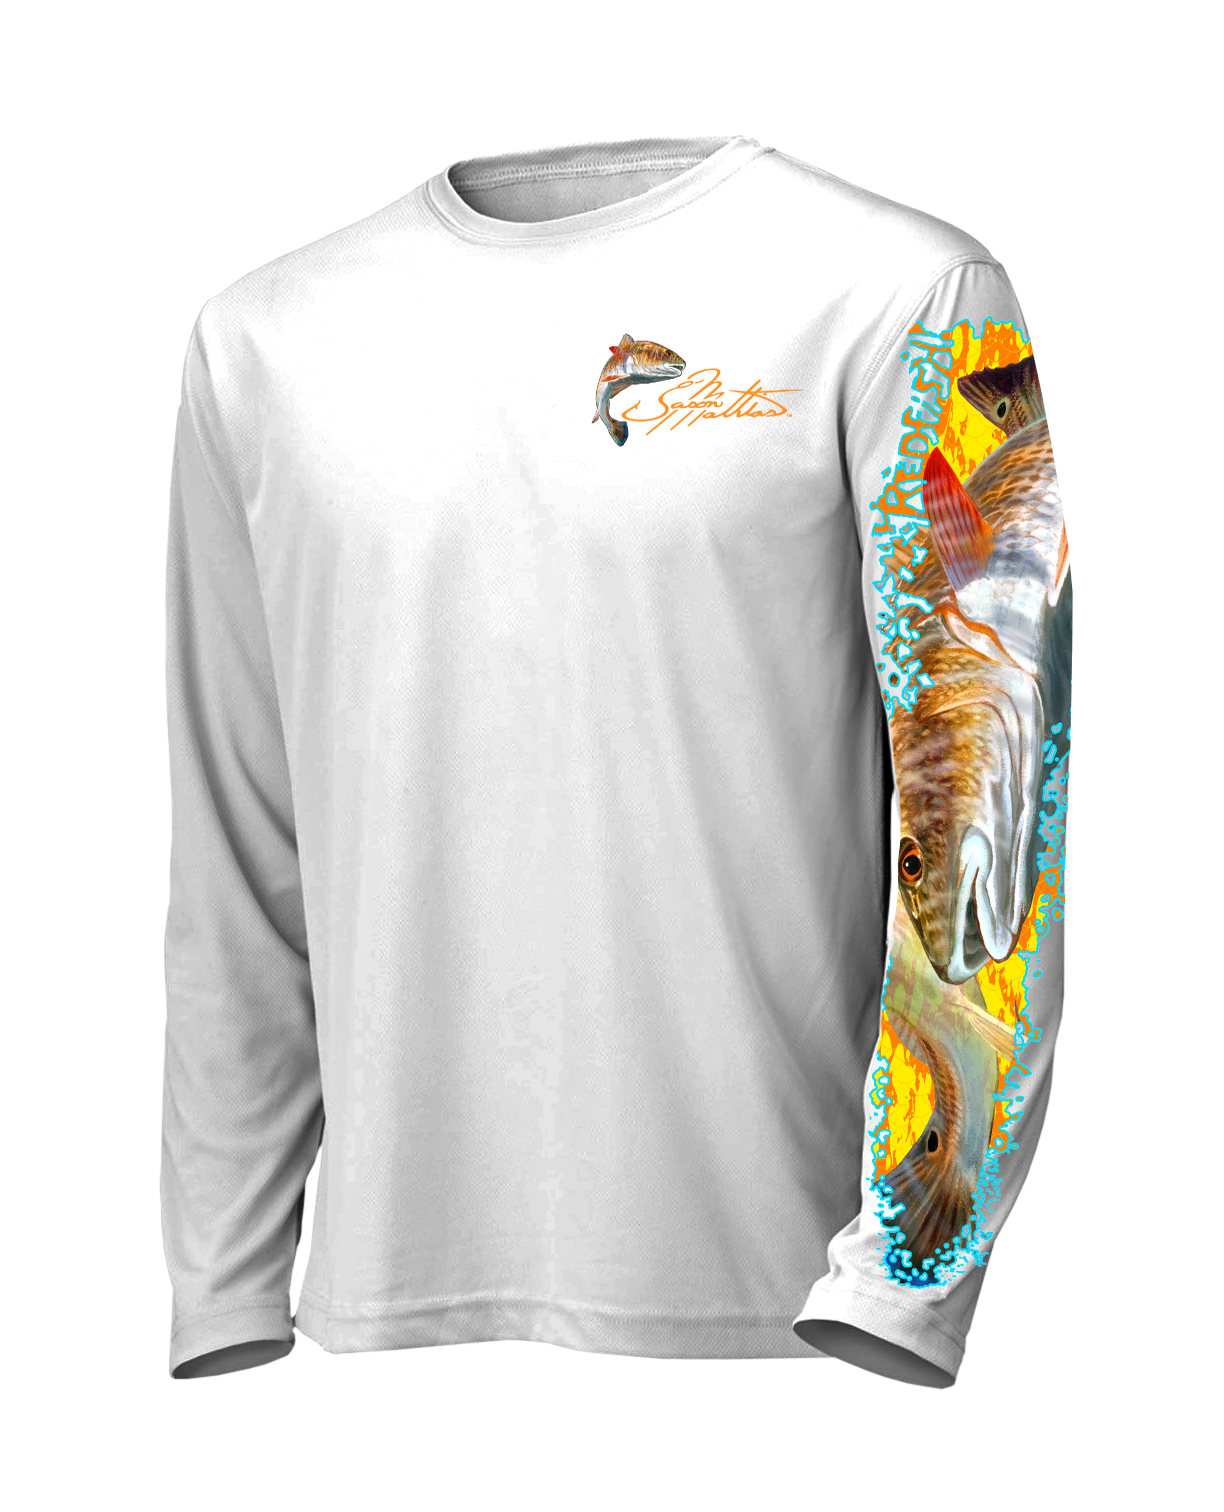 0cdf515afb14 Ls High Performance Tee Shirt Redfish Jason Mathias Studios